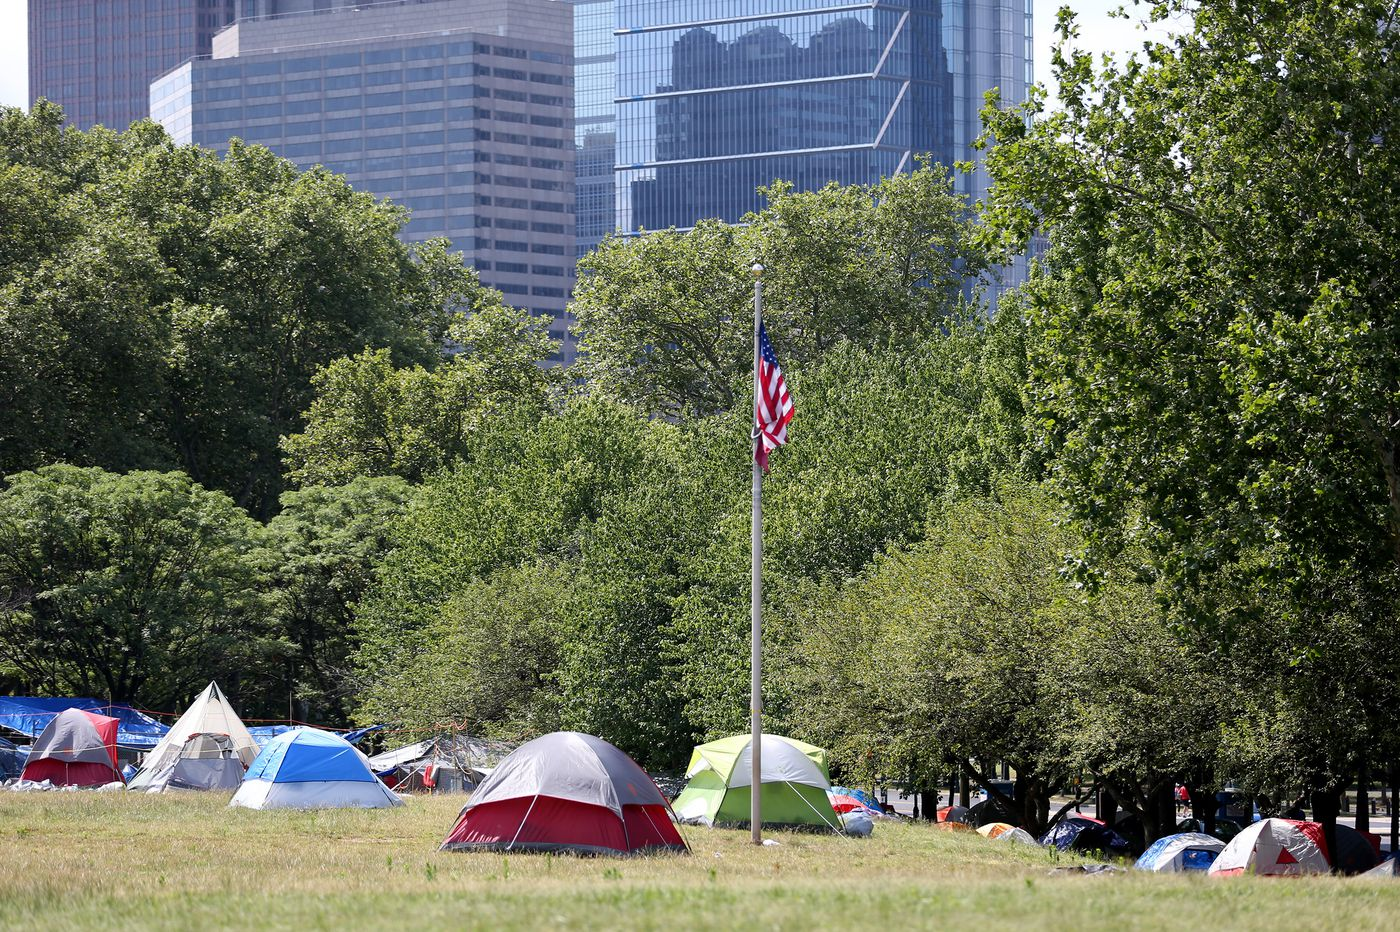 Philly says it's close to a deal to end the homeless encampment on Benjamin Franklin Parkway